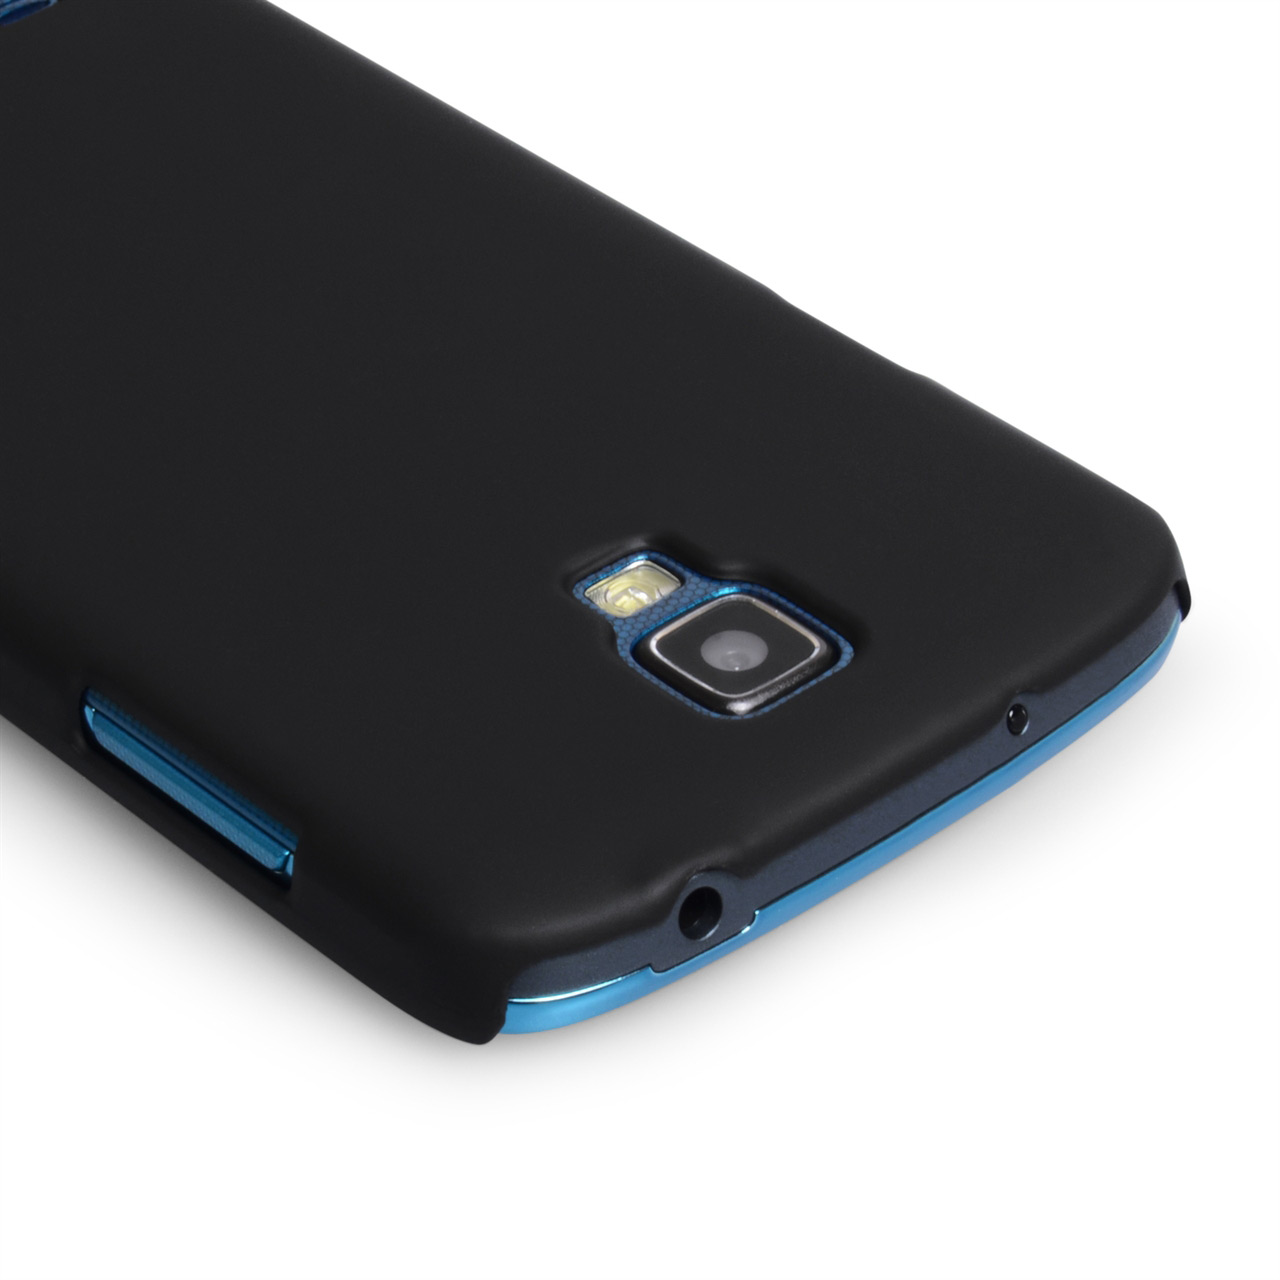 YouSave Accessories Samsung Galaxy S4 Active Hard Hybrid Case - Black